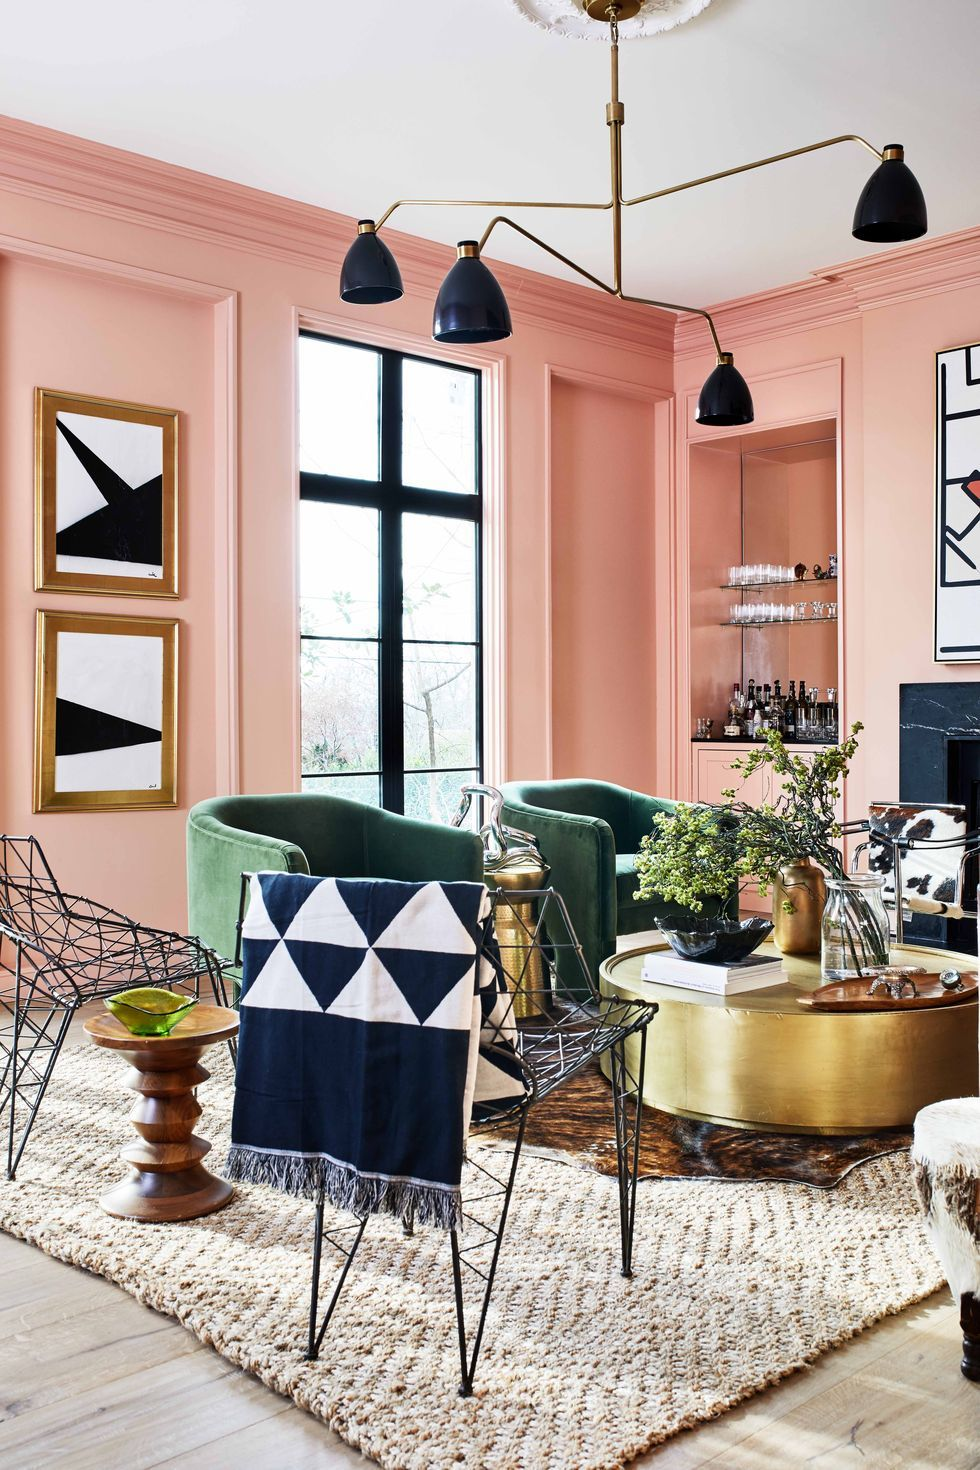 Use the peach color to decorate amazing interiors